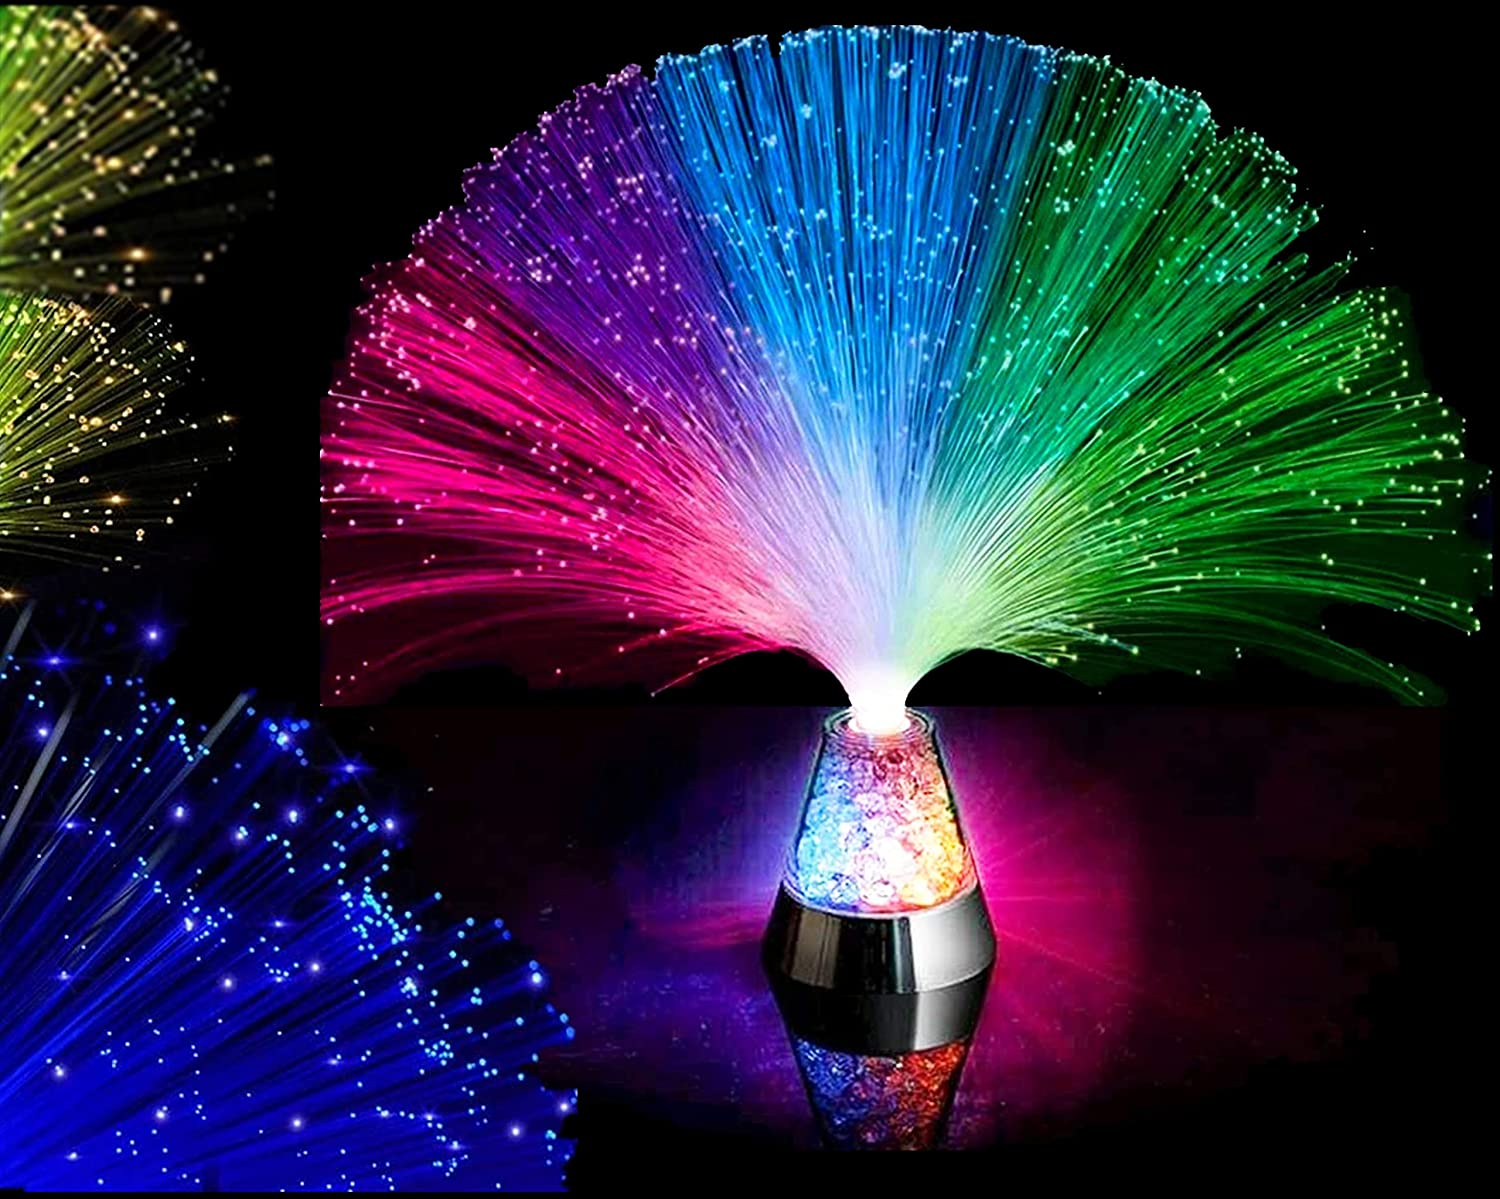 Ice Fiber Optic Mood Novelty Lamps Lighting Glacier with Color-Changing Crystals Base : Garden & Outdoor